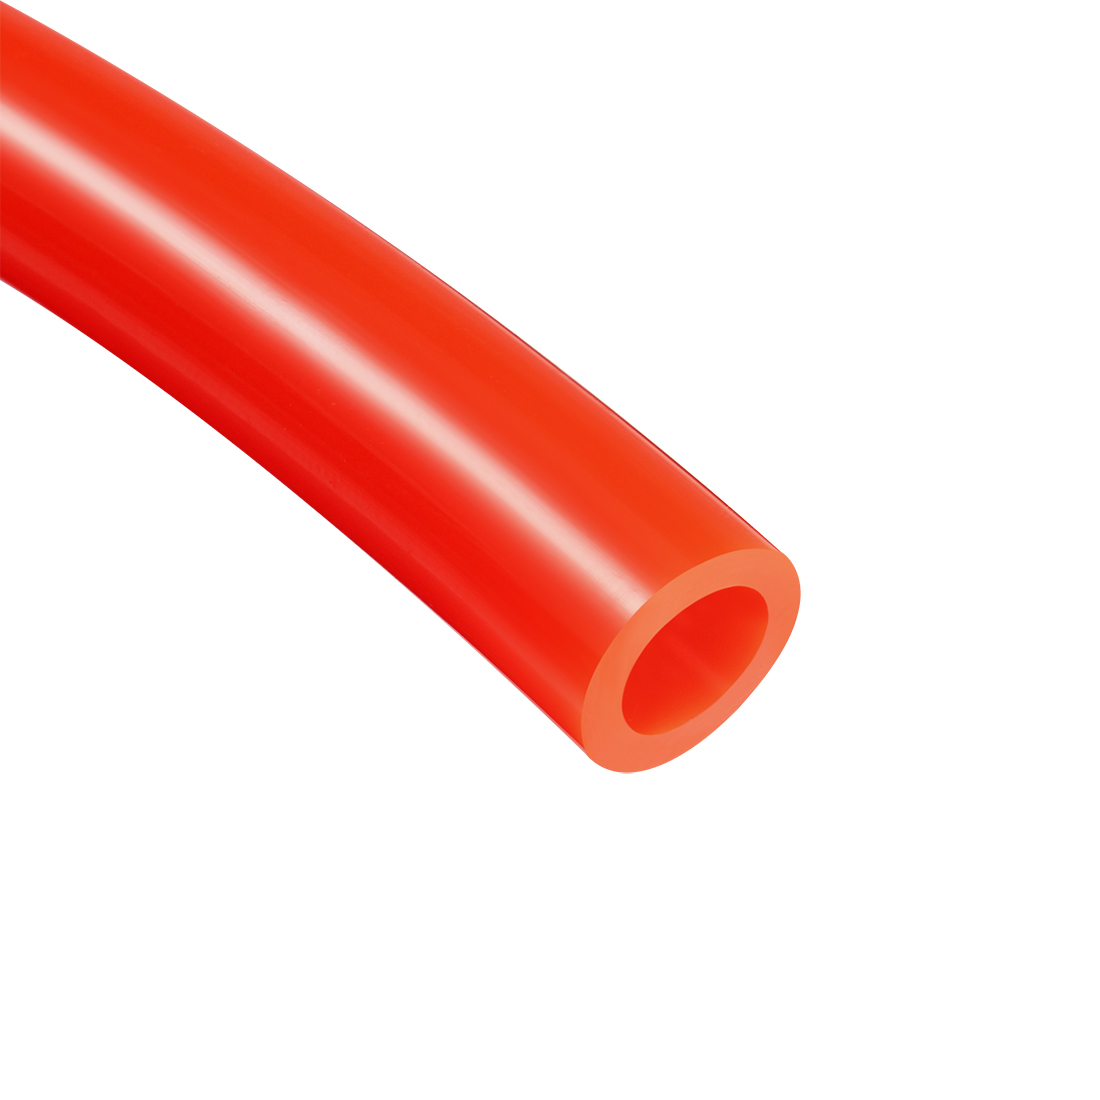 10mm X 6.5mm Pneumatic Air PU Hose Pipe Tube 10 Meter 32.8ft Red - image 4 of 4